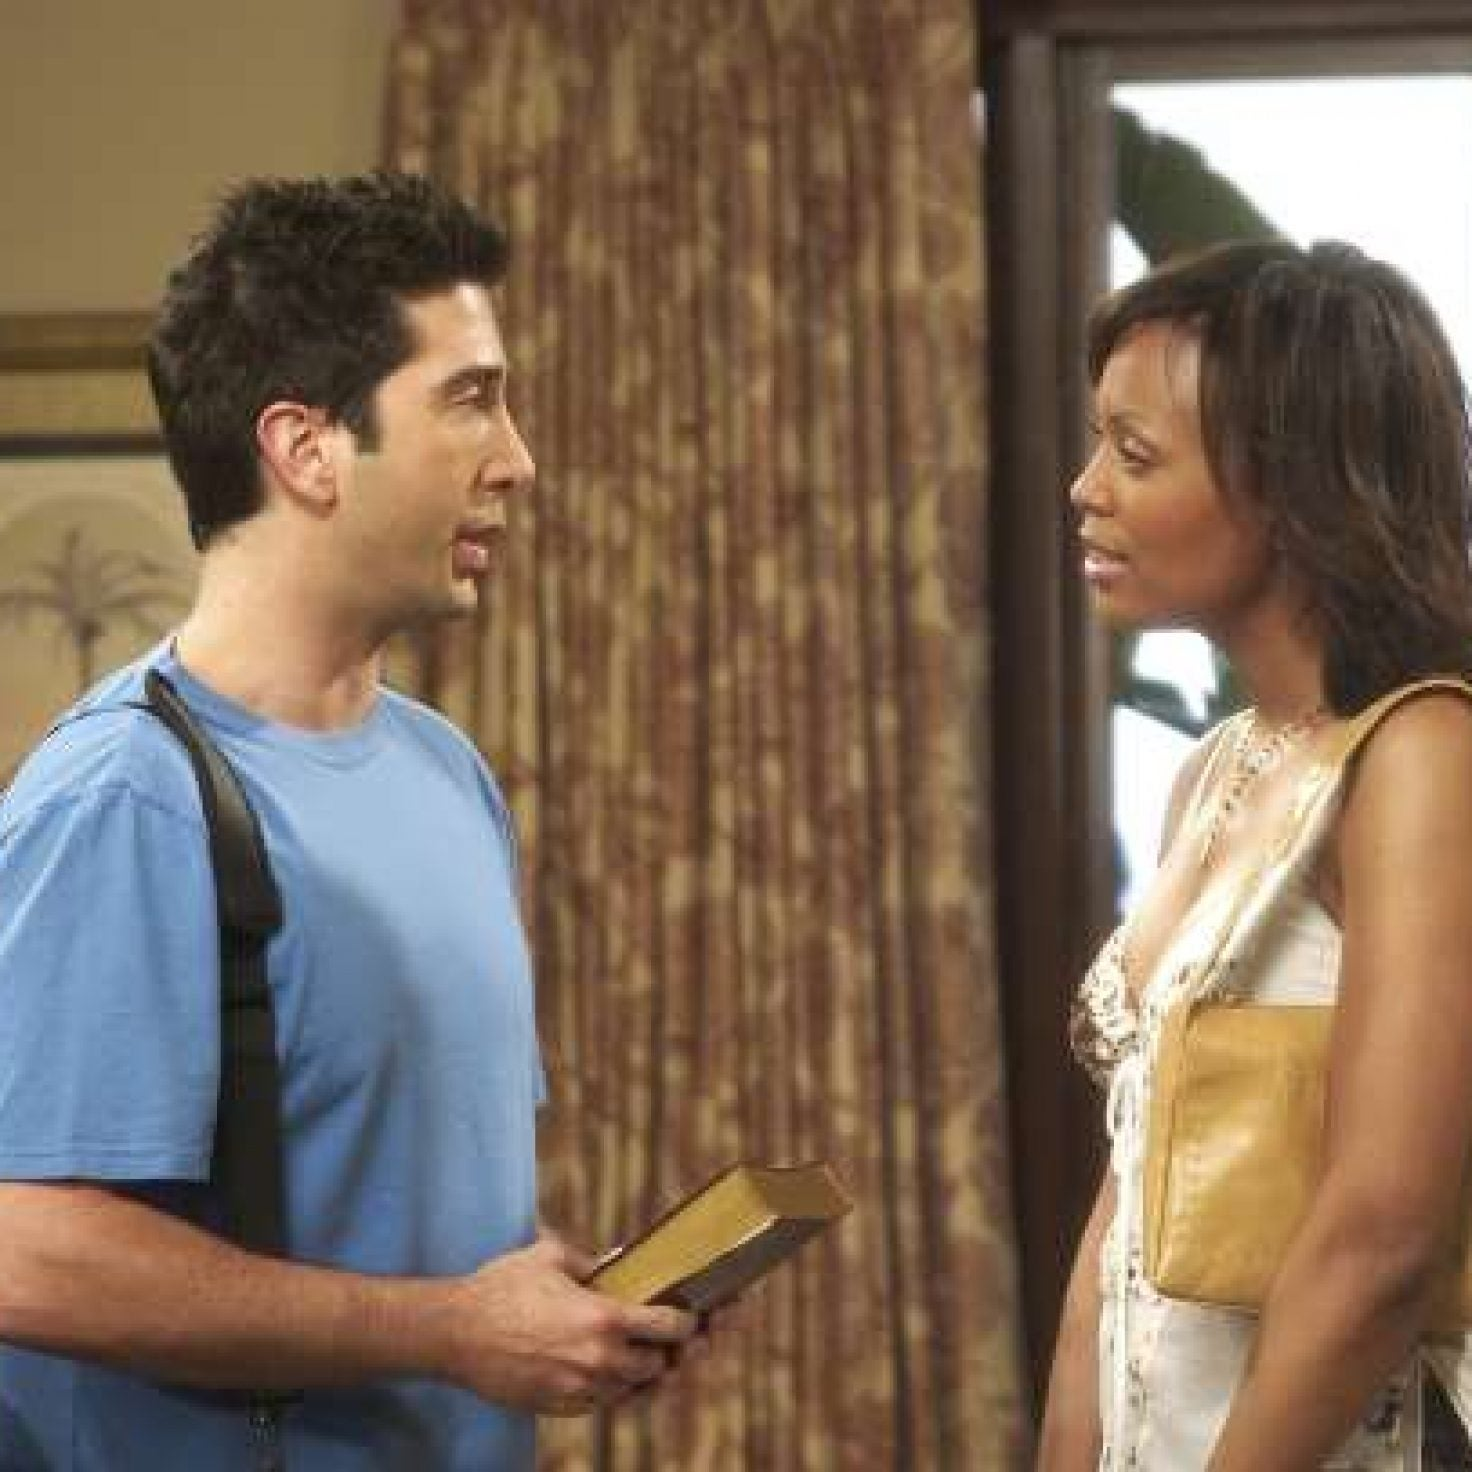 David Schwimmer Reveals He Pushed For His Character Ross To Date Black Women On 'Friends'